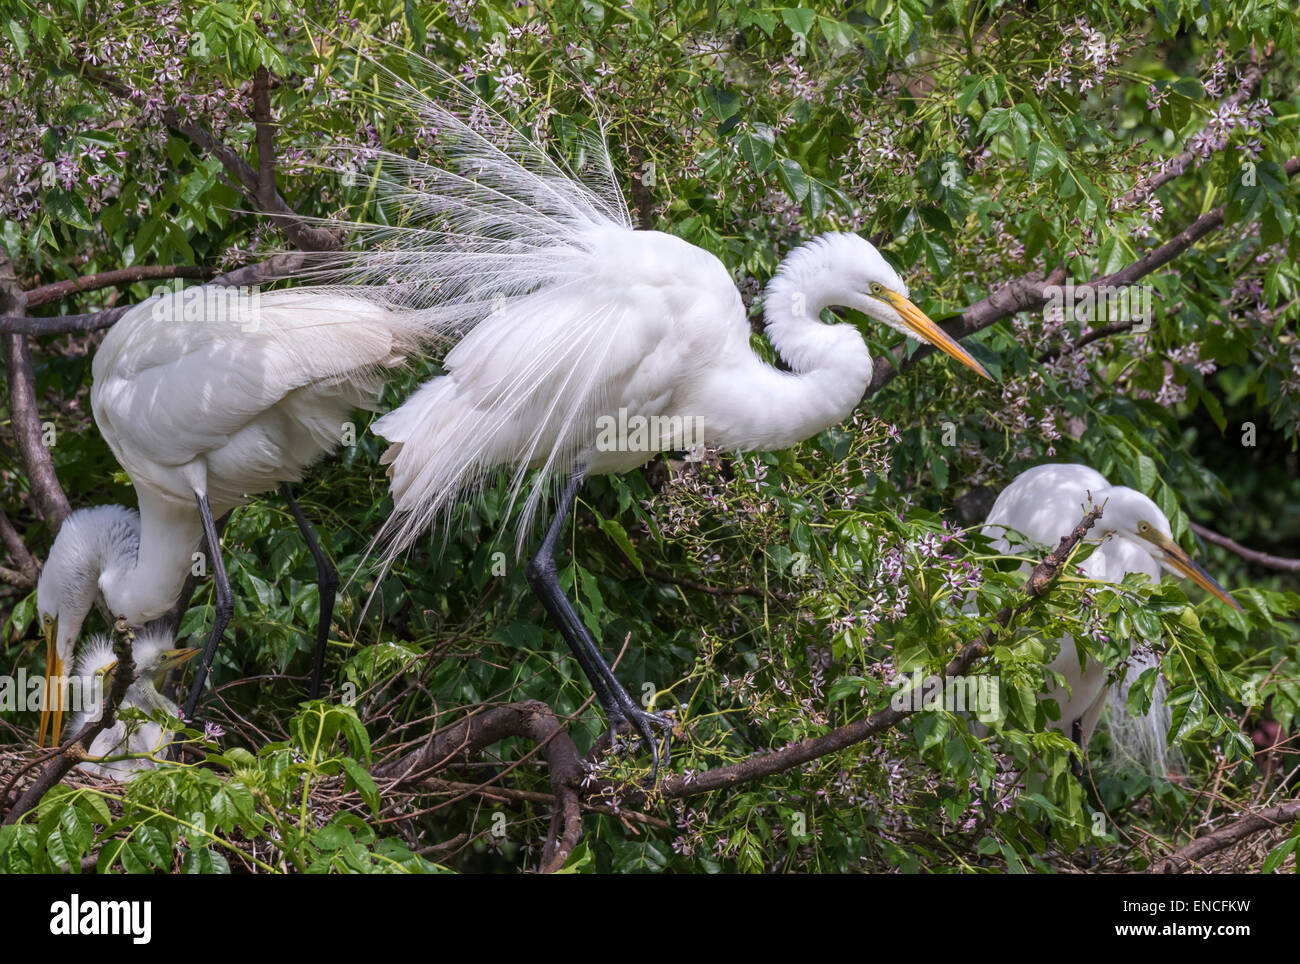 Great egret (Ardea alba) in breeding plumage near the nest at a rookery, High Island, Texas, USA. - Stock Image